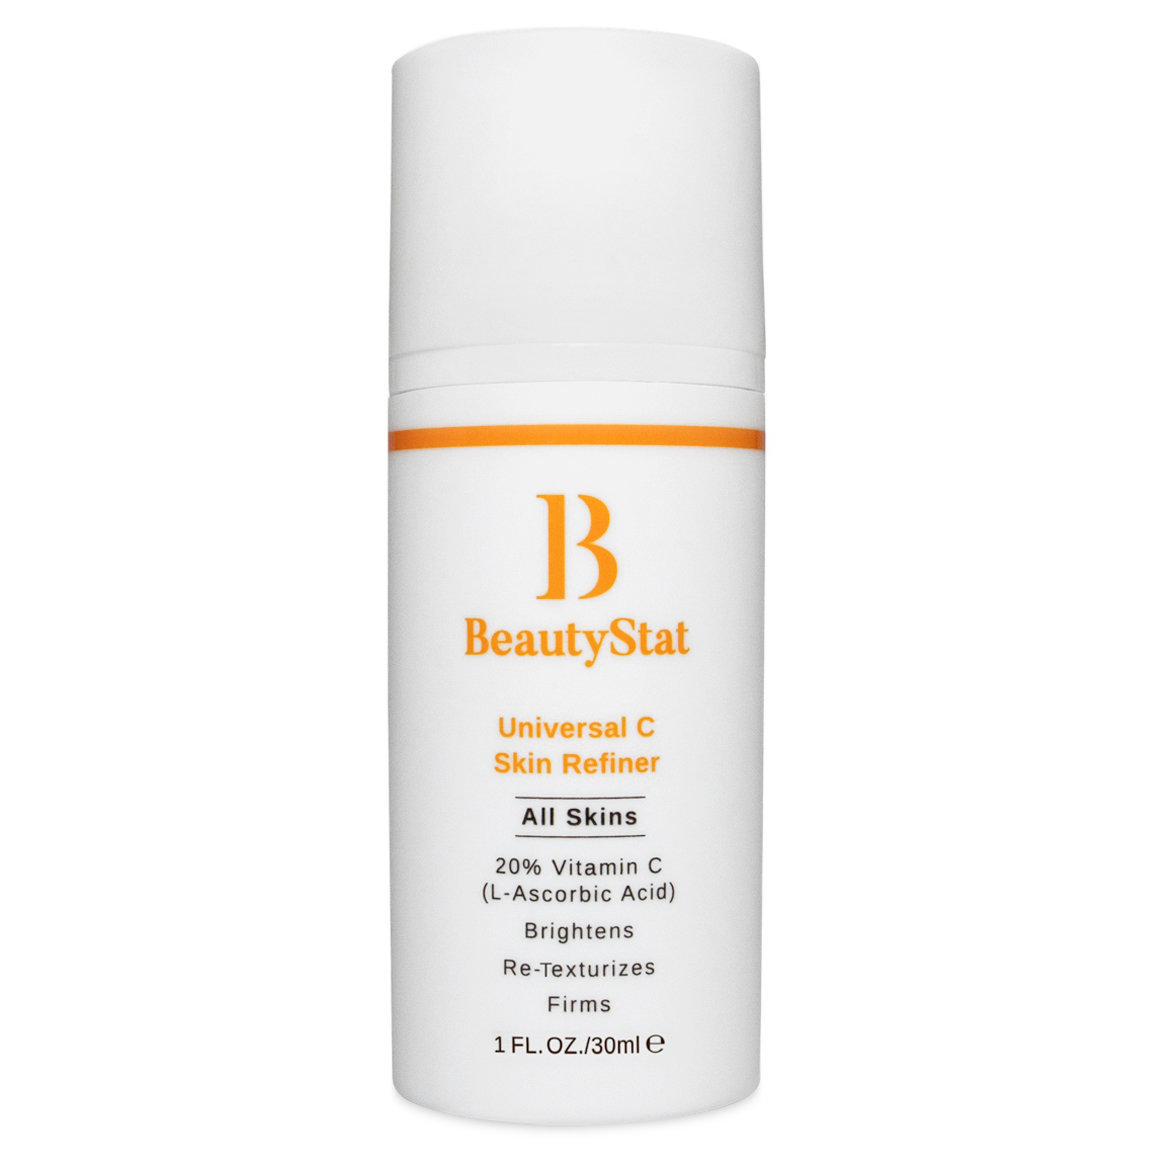 BeautyStat Universal C Skin Refiner alternative view 1.